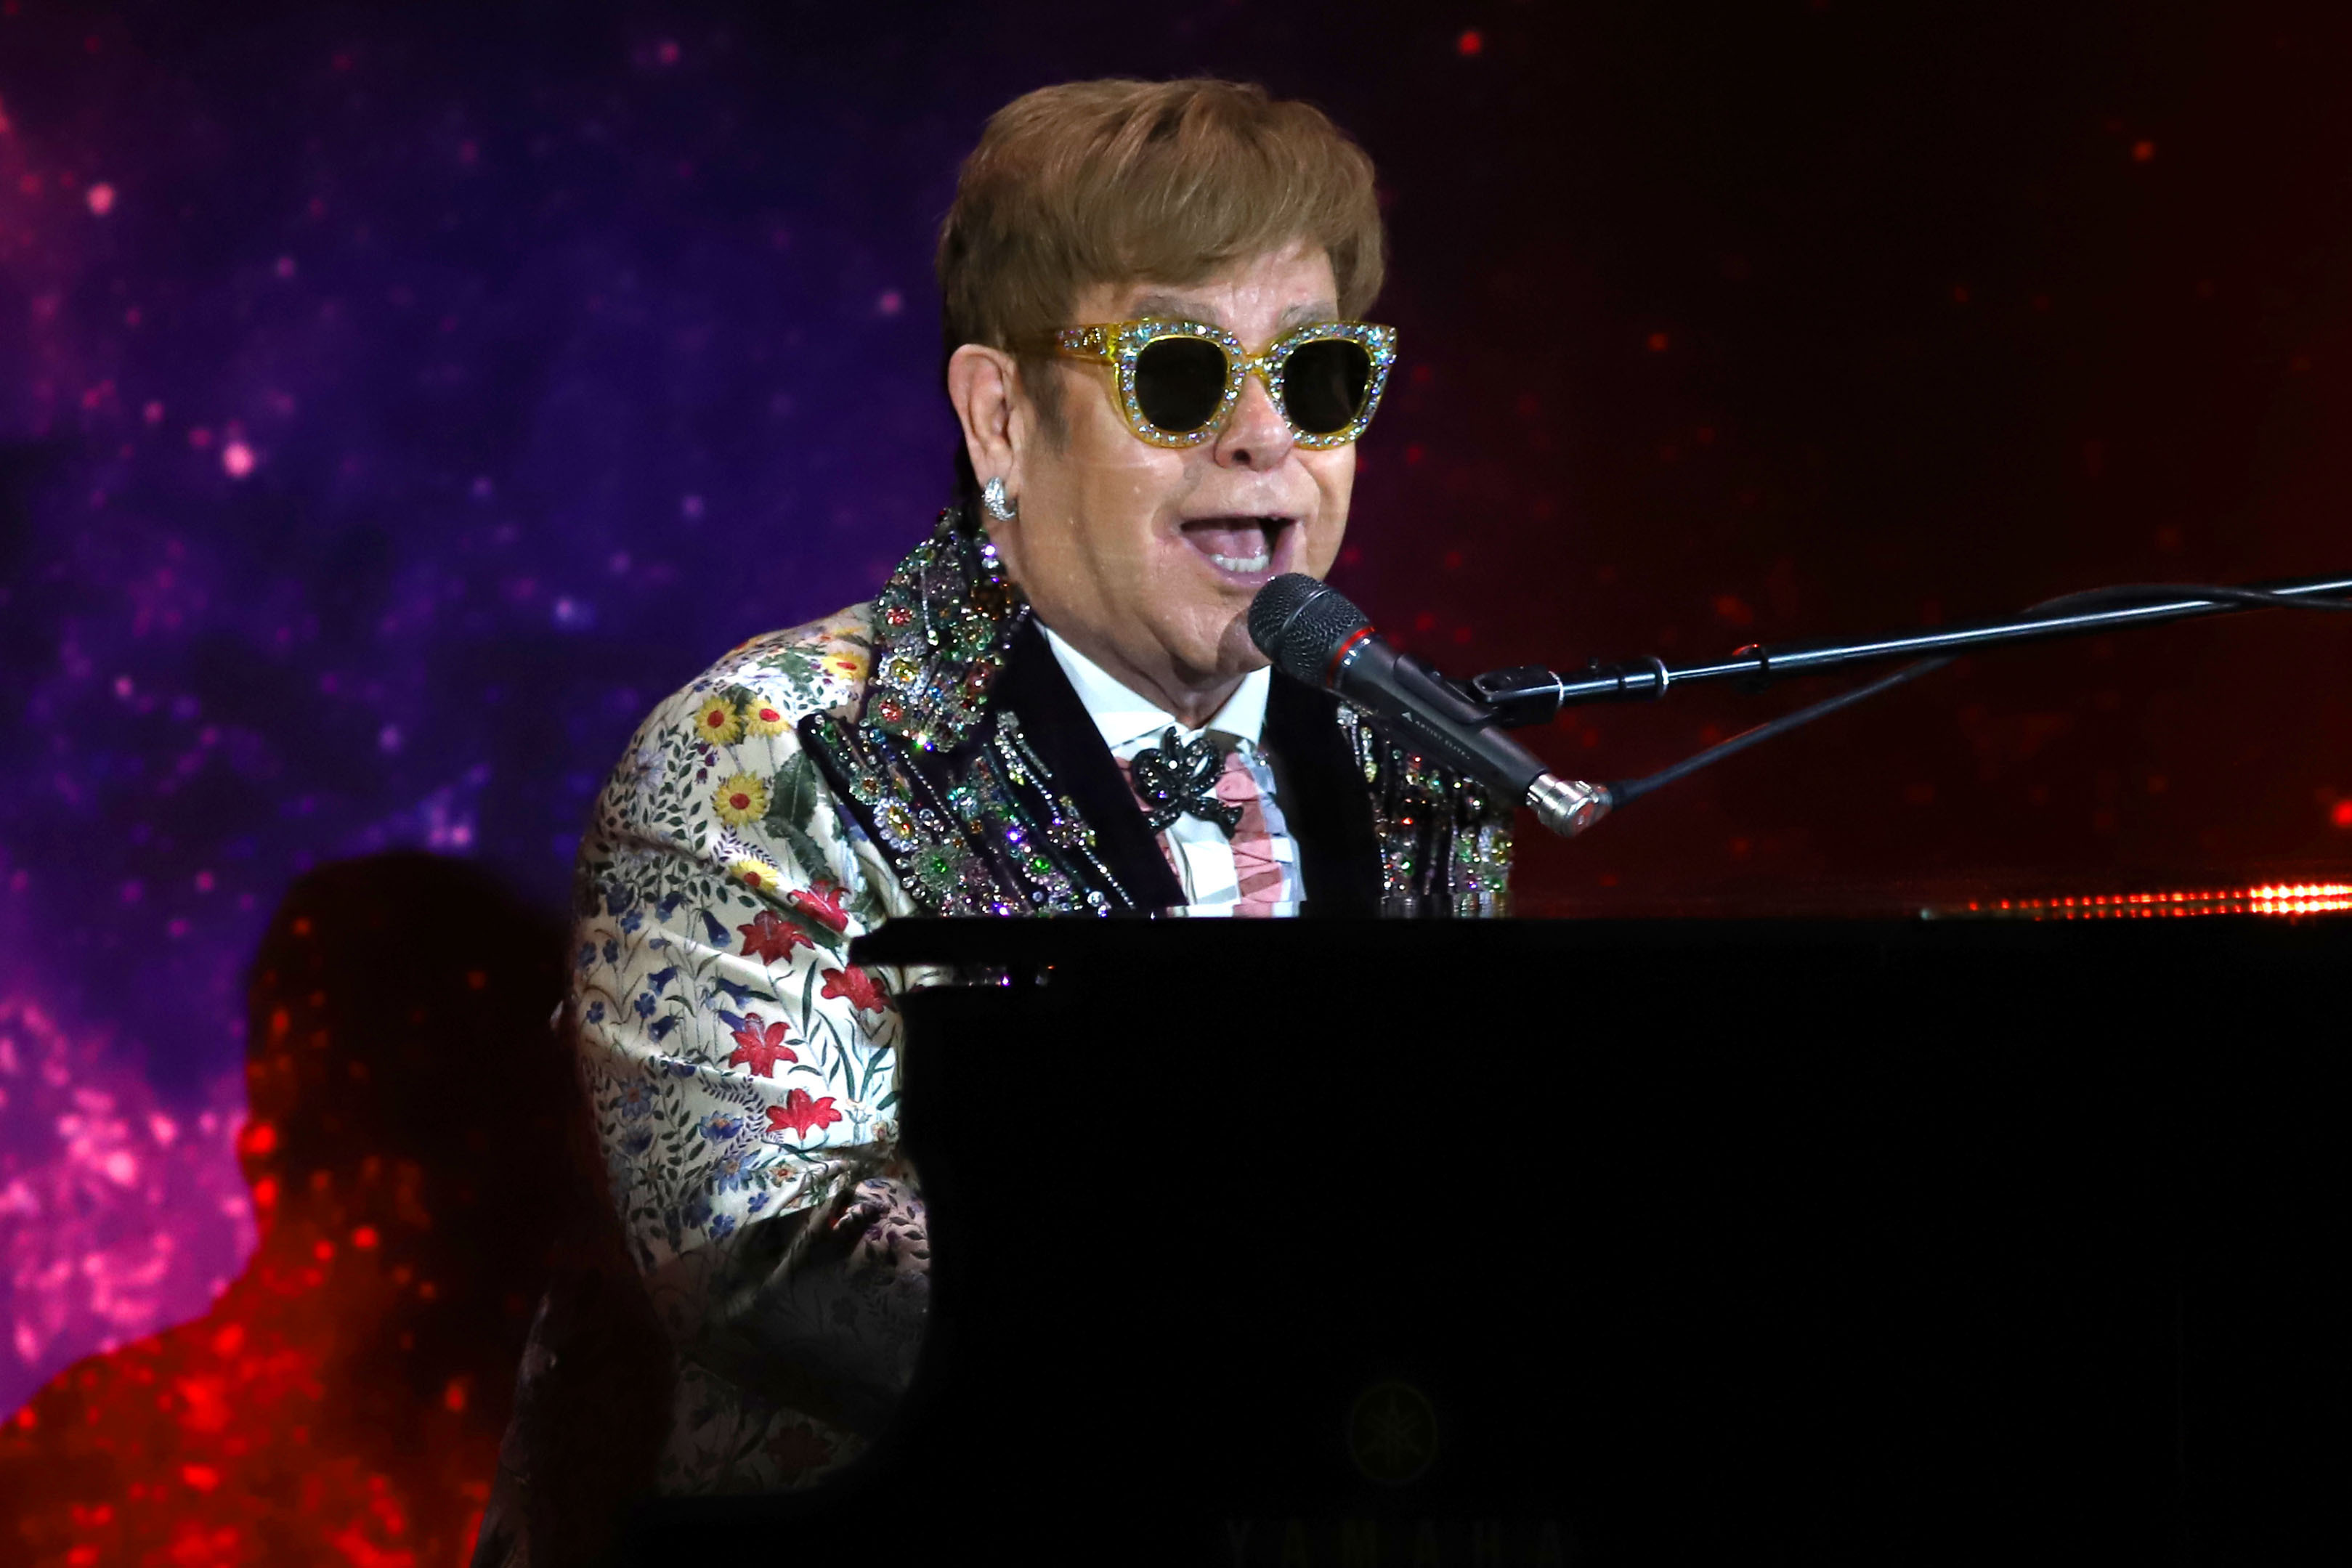 Elton John farewell tour comes to DC in September